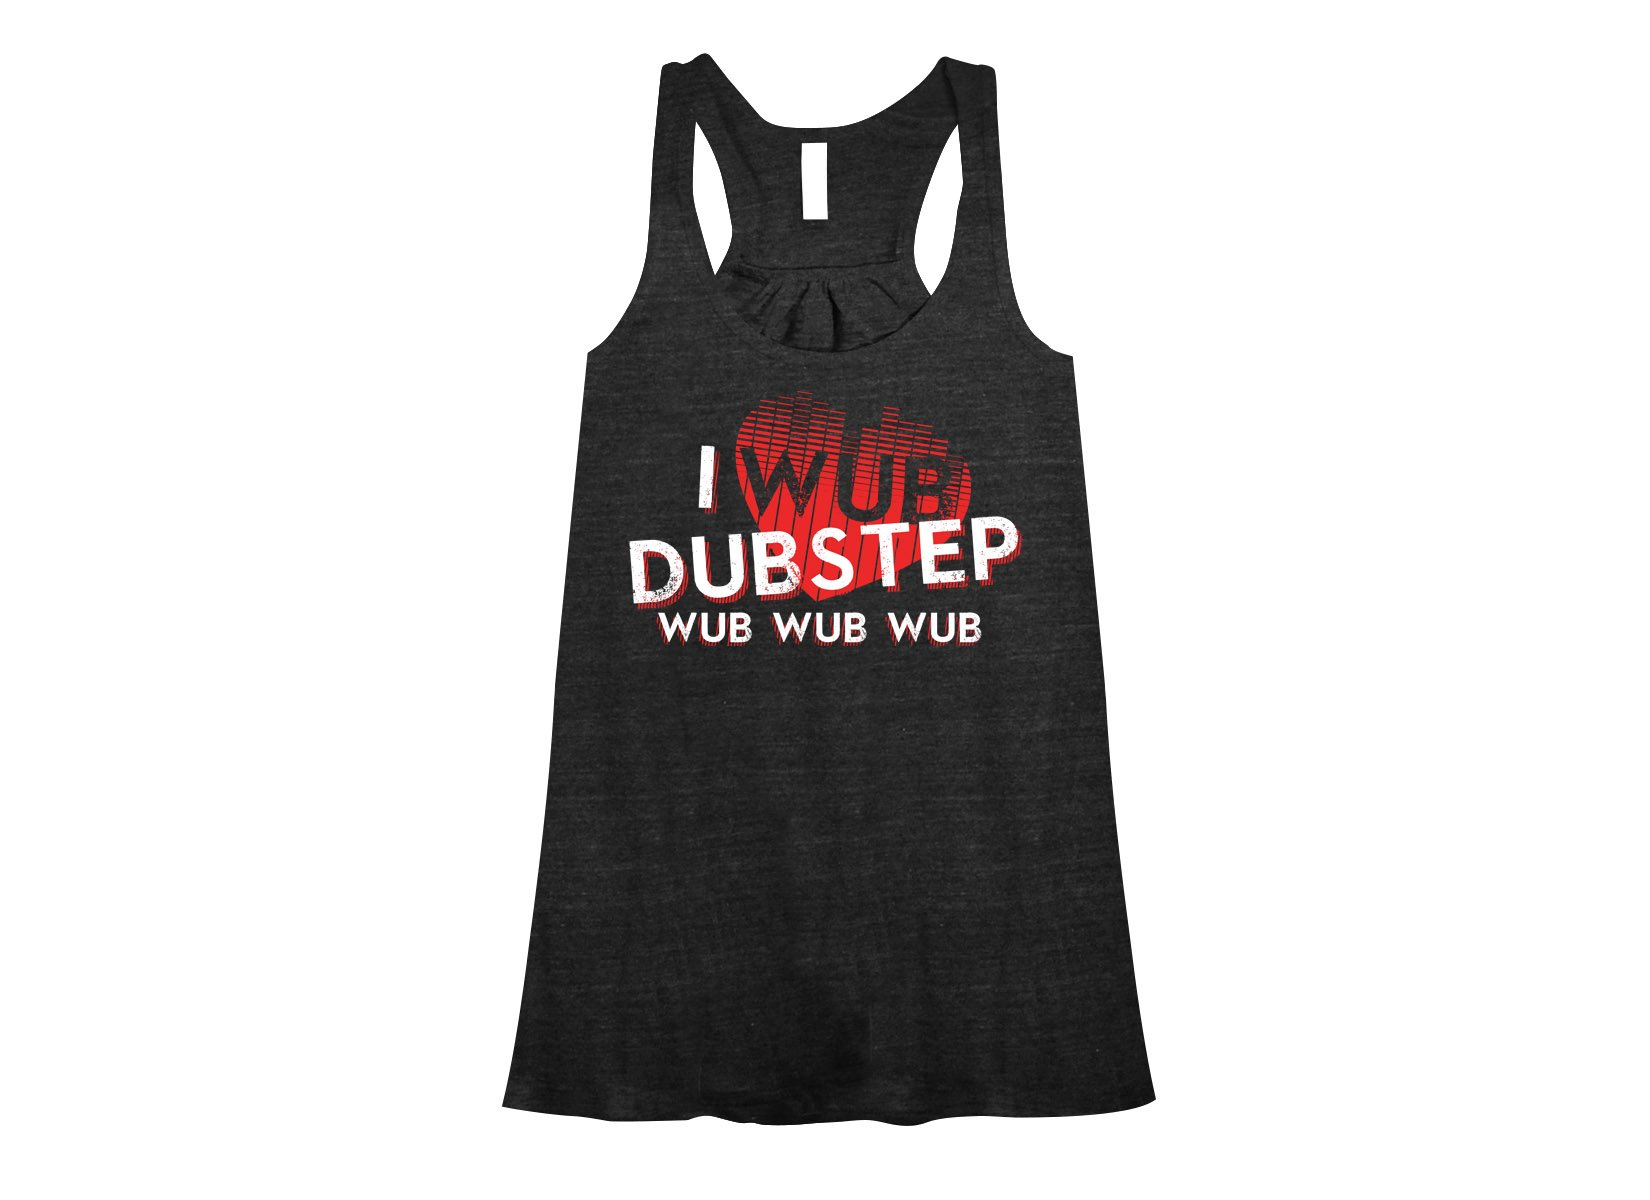 I Wub Dubstep on Womens Tanks T-Shirt